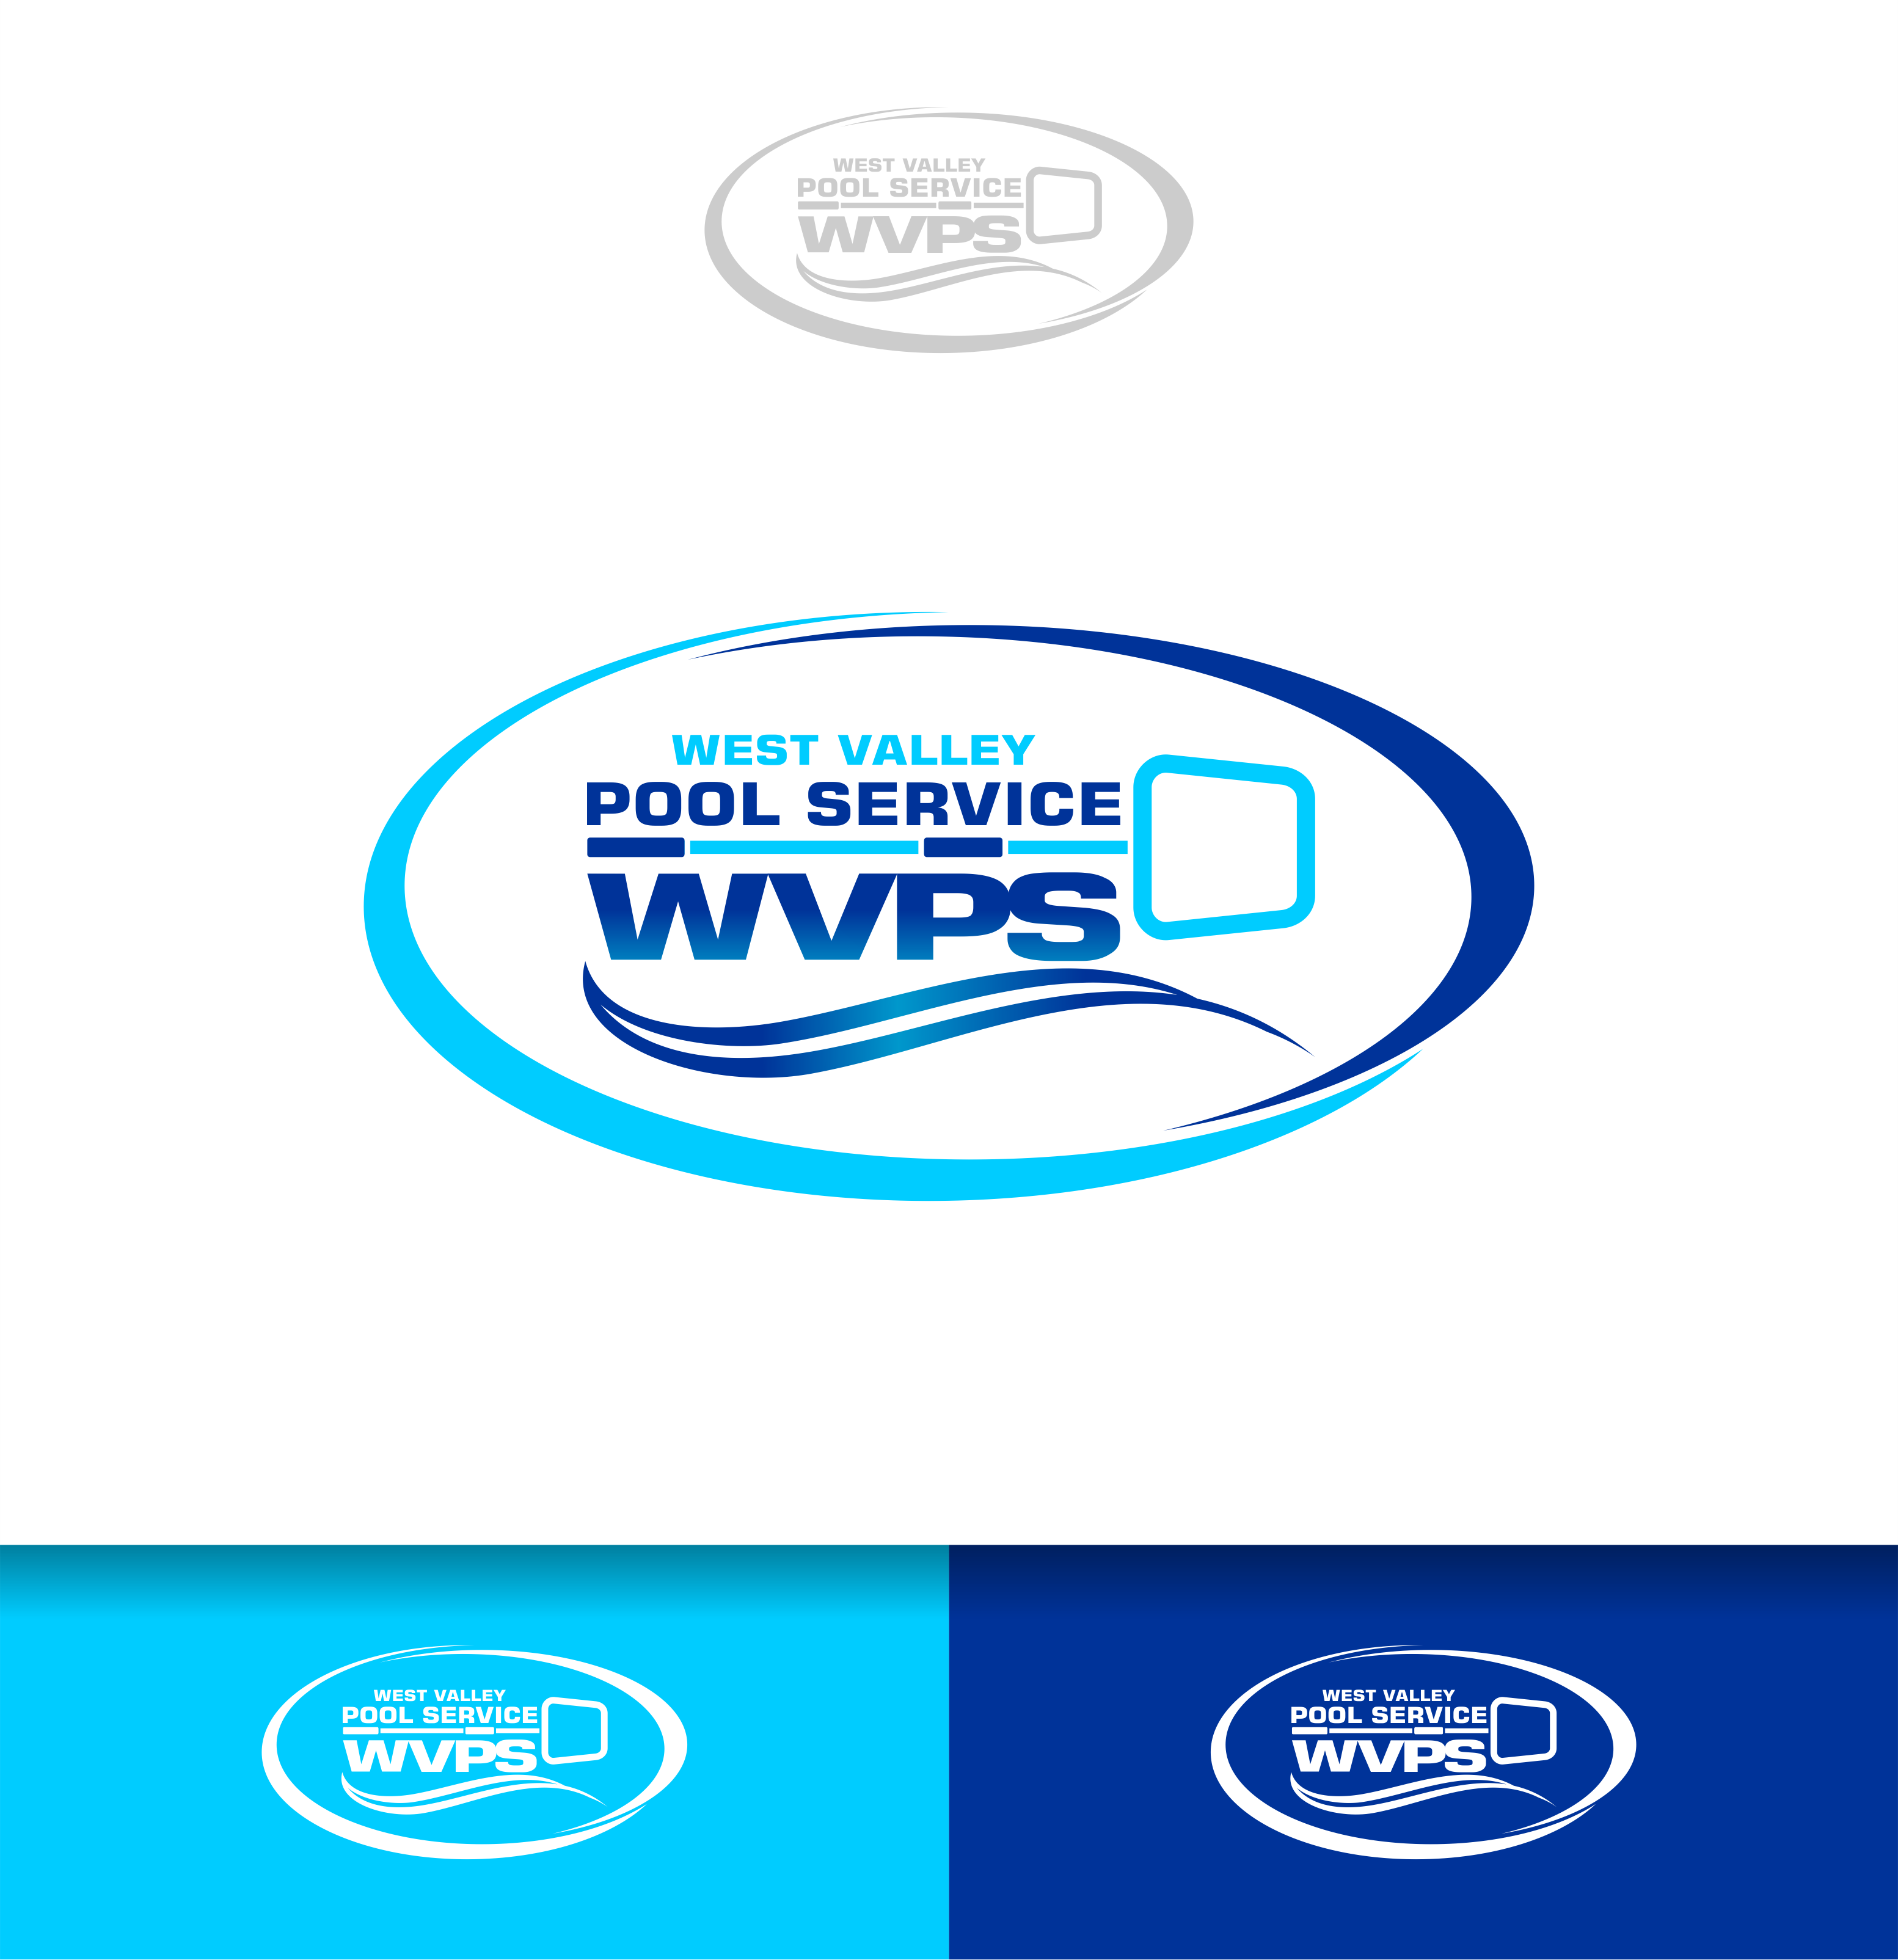 Logo Design by Raymond Garcia - Entry No. 106 in the Logo Design Contest Clever Logo Design for West Valley Pool Service.